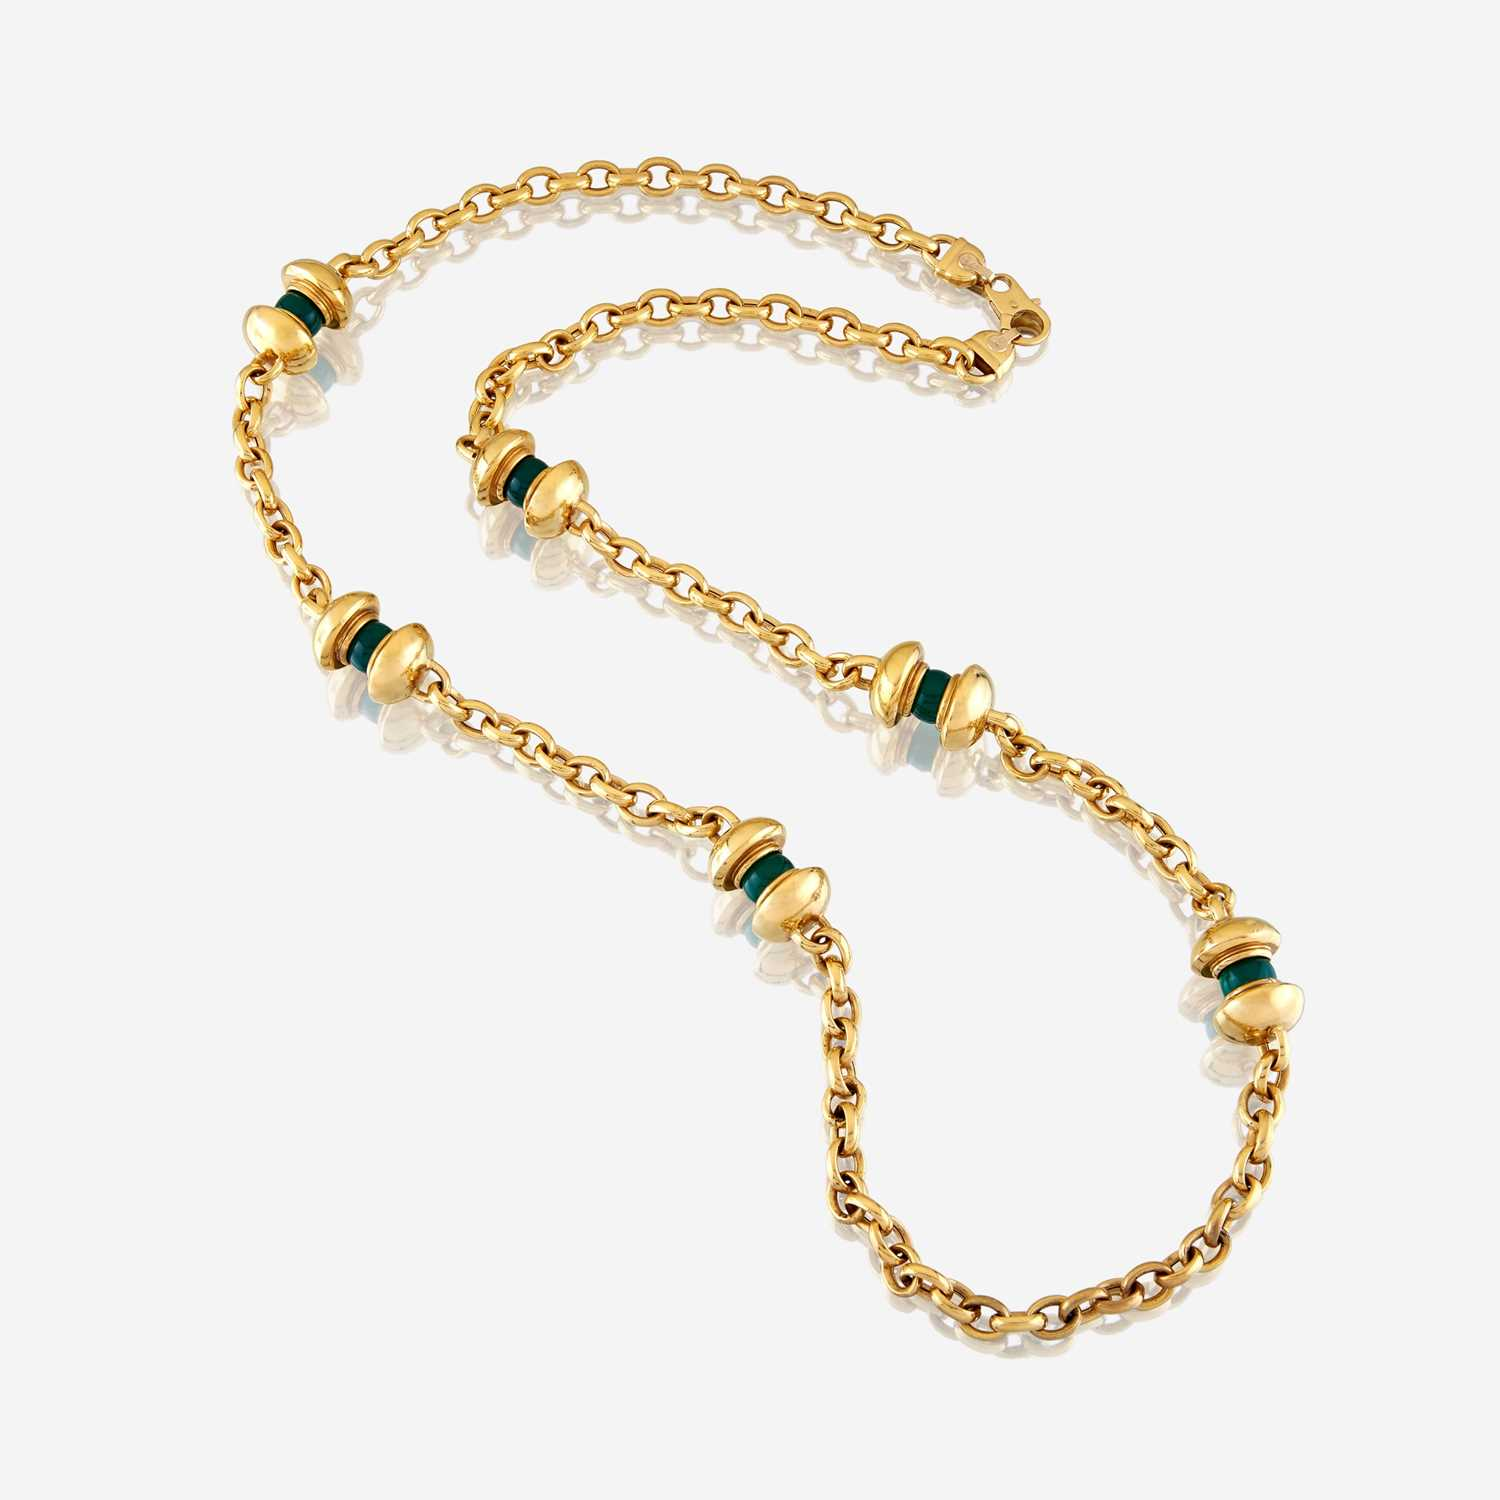 Lot 35 - An eighteen karat gold and dyed chalcedony necklace